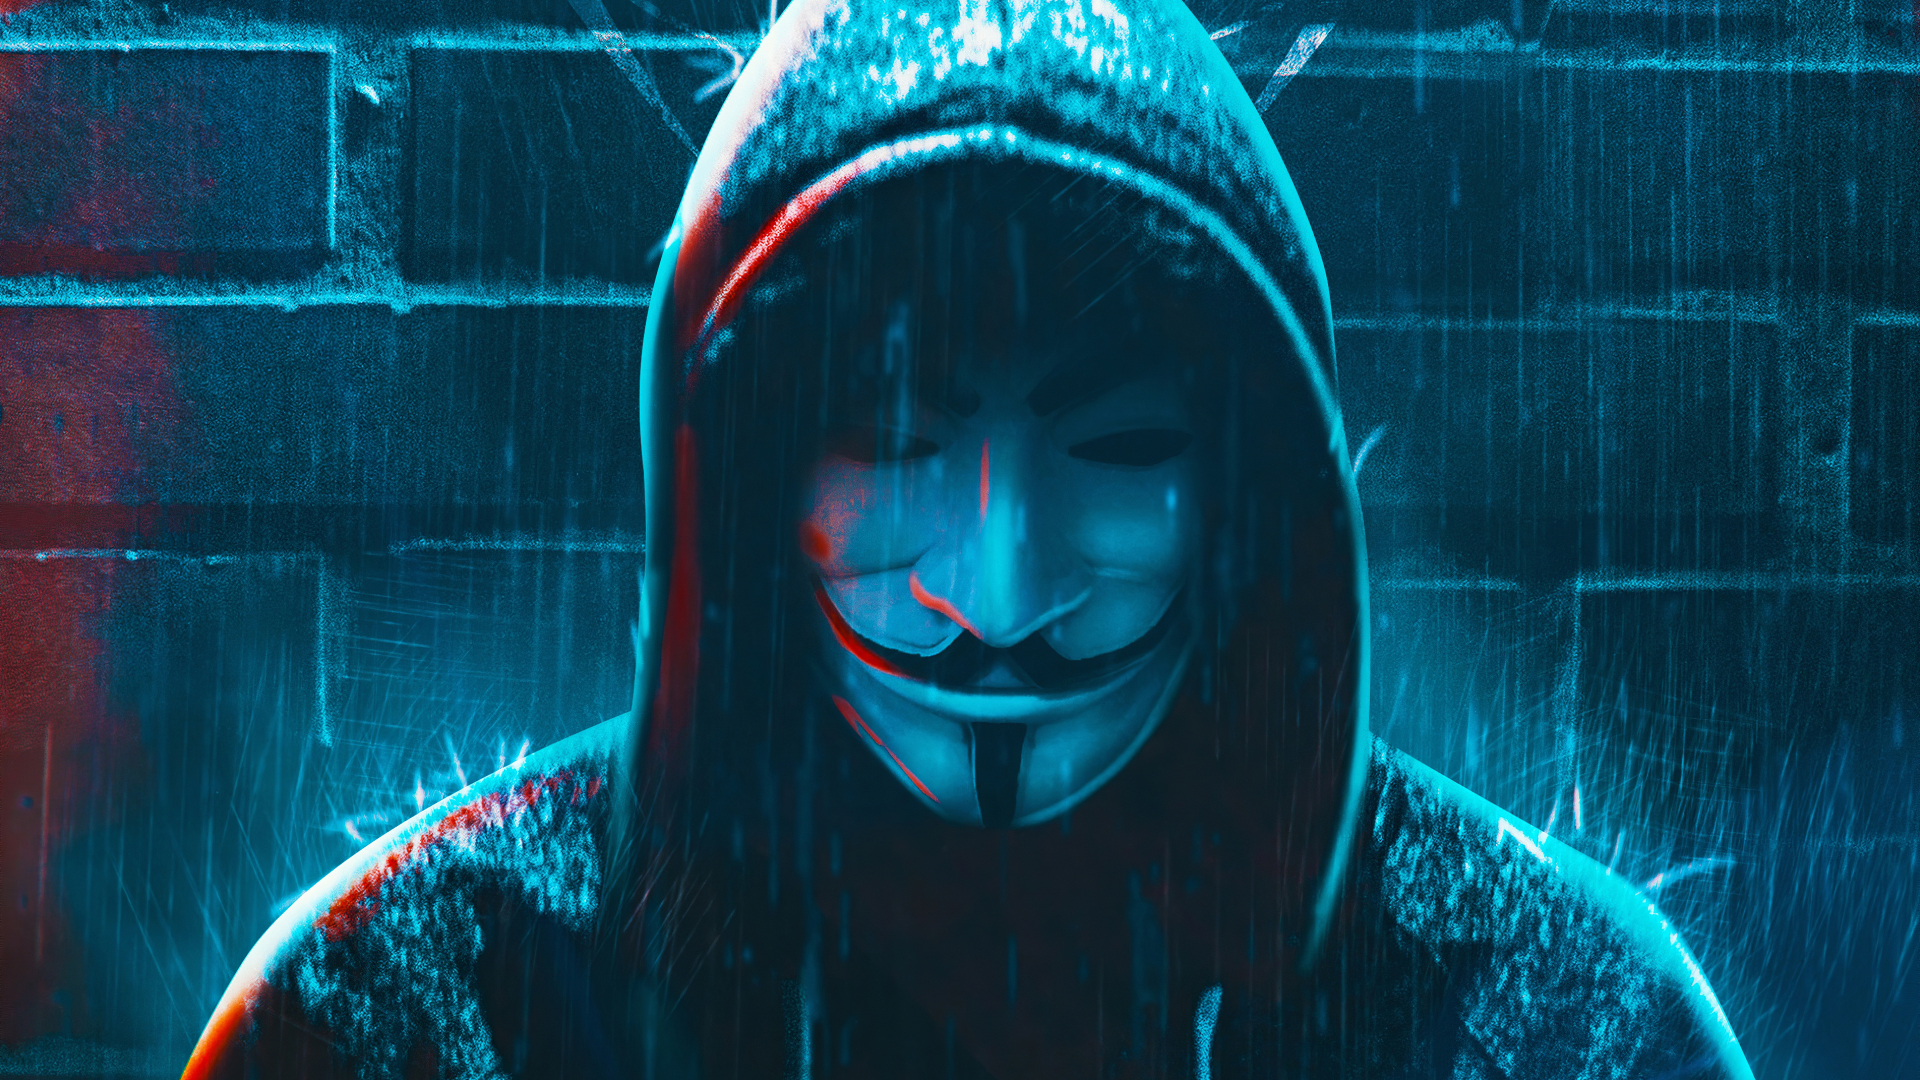 1920x1080 Anonymous 4K Hacker Mask 1080P Laptop Full HD ...